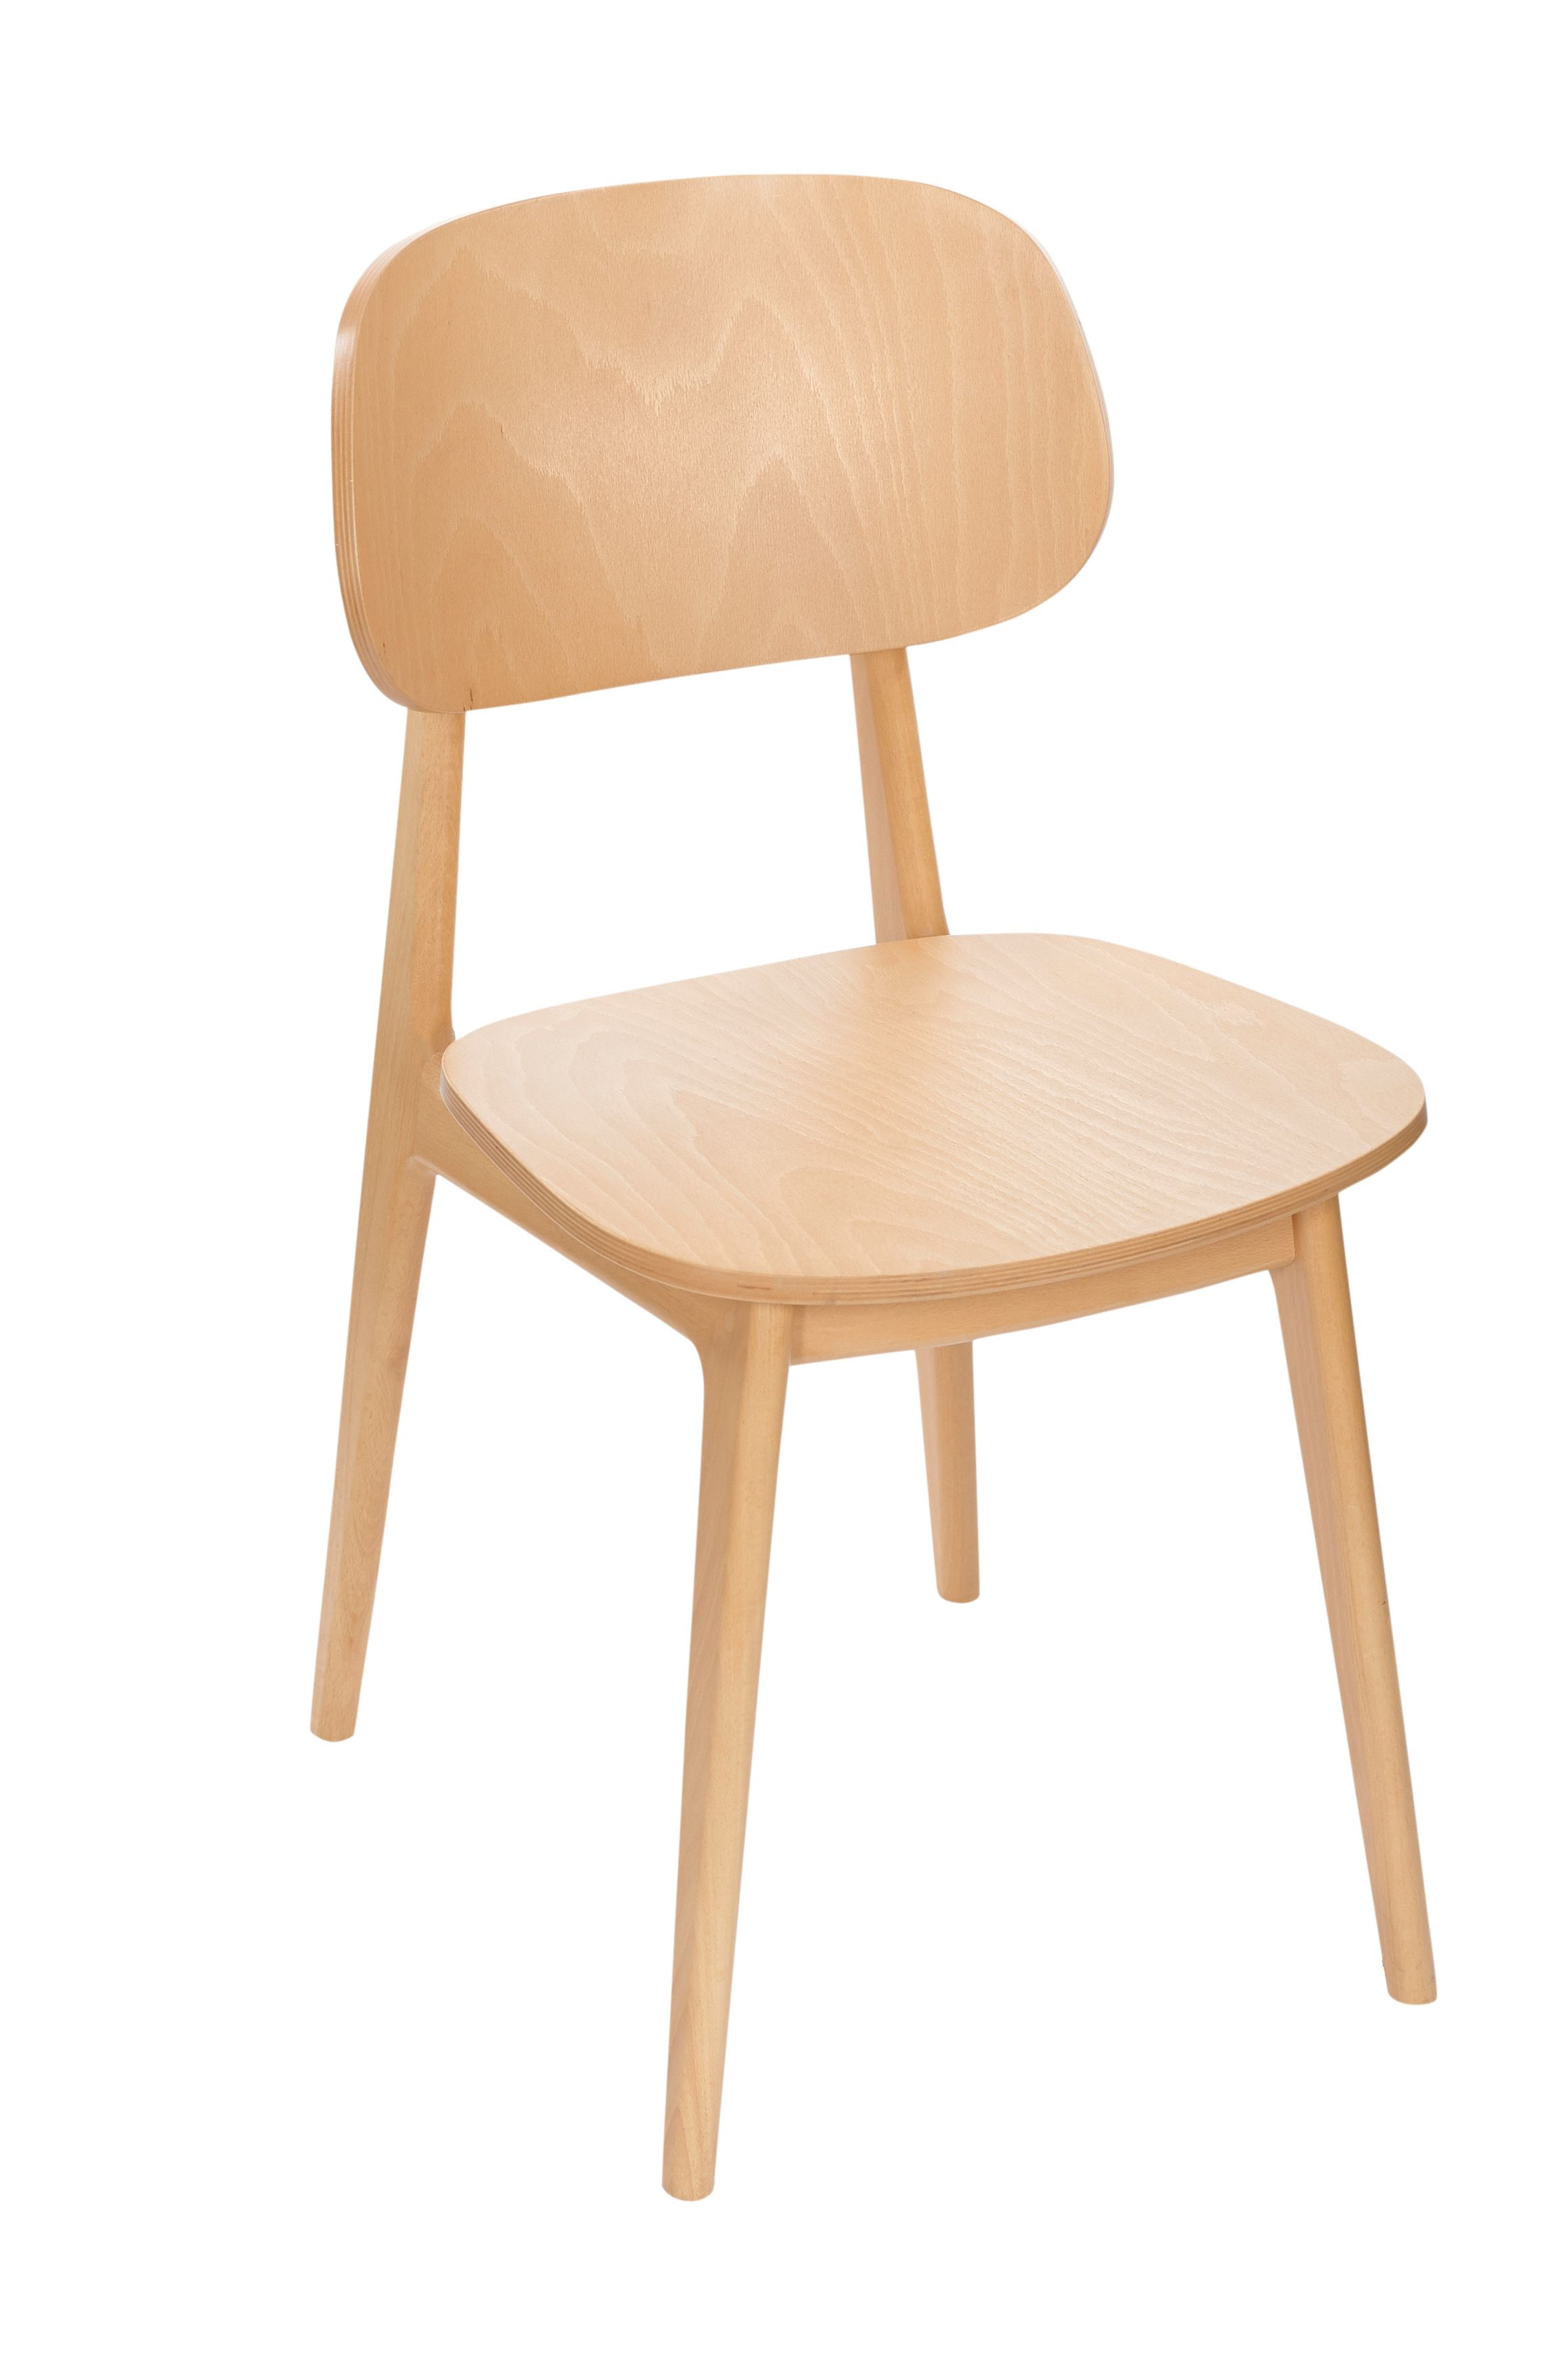 Bfm emma chairs is made from european beechwood manufactured in europe this clean modern design can be upholstered on the seat and the back to look great